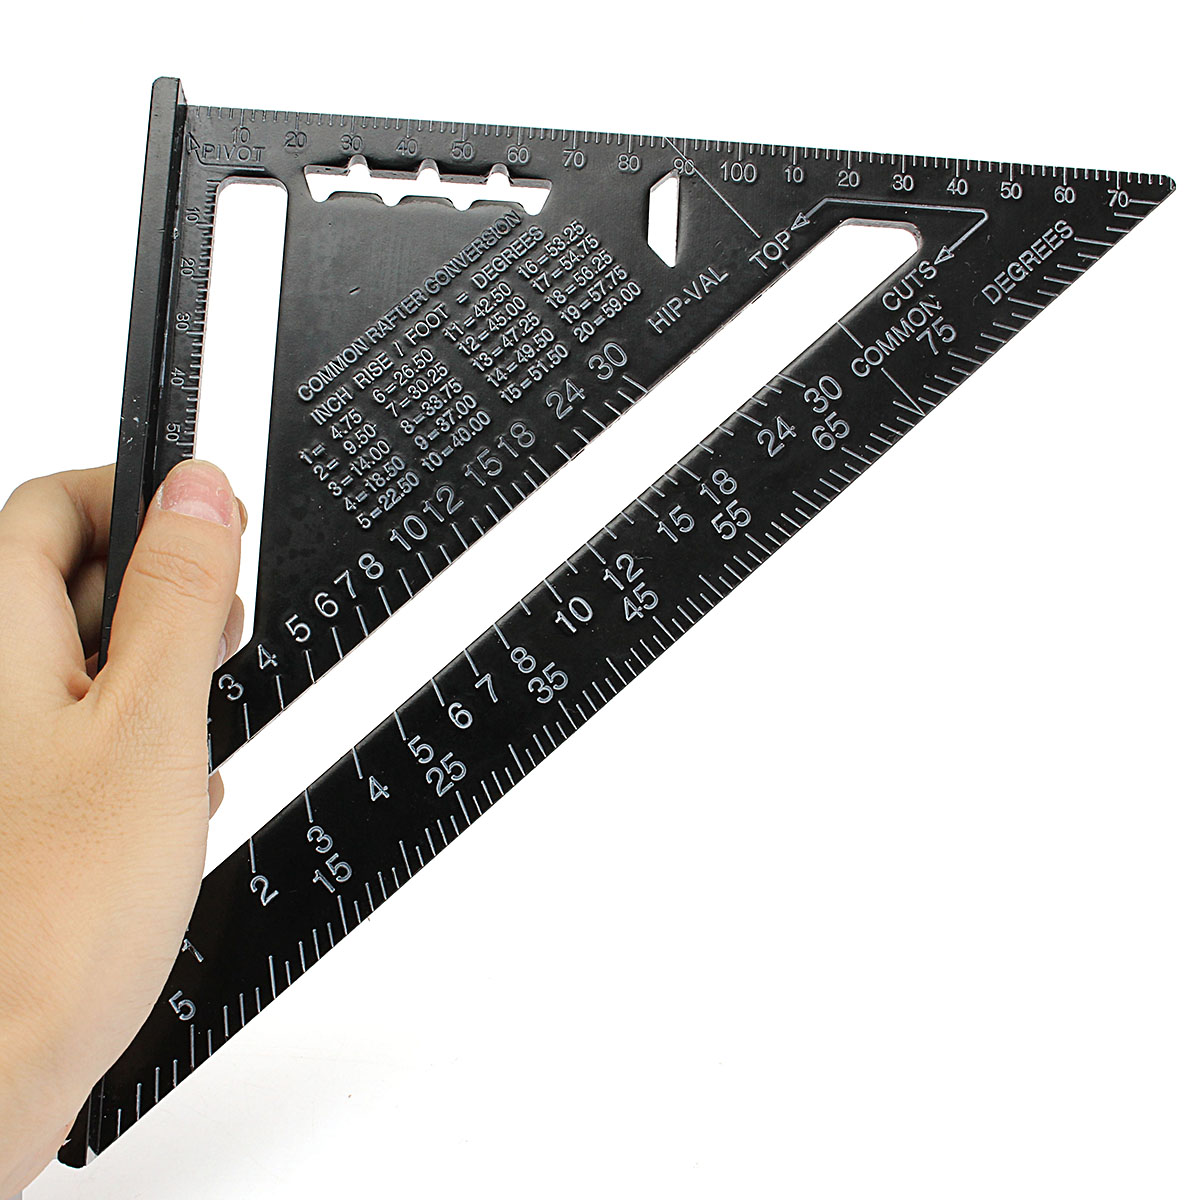 Raitool™ AR01 260x185x185mm Metric Aluminum Alloy Triangle Ruler Black Triangular Rule